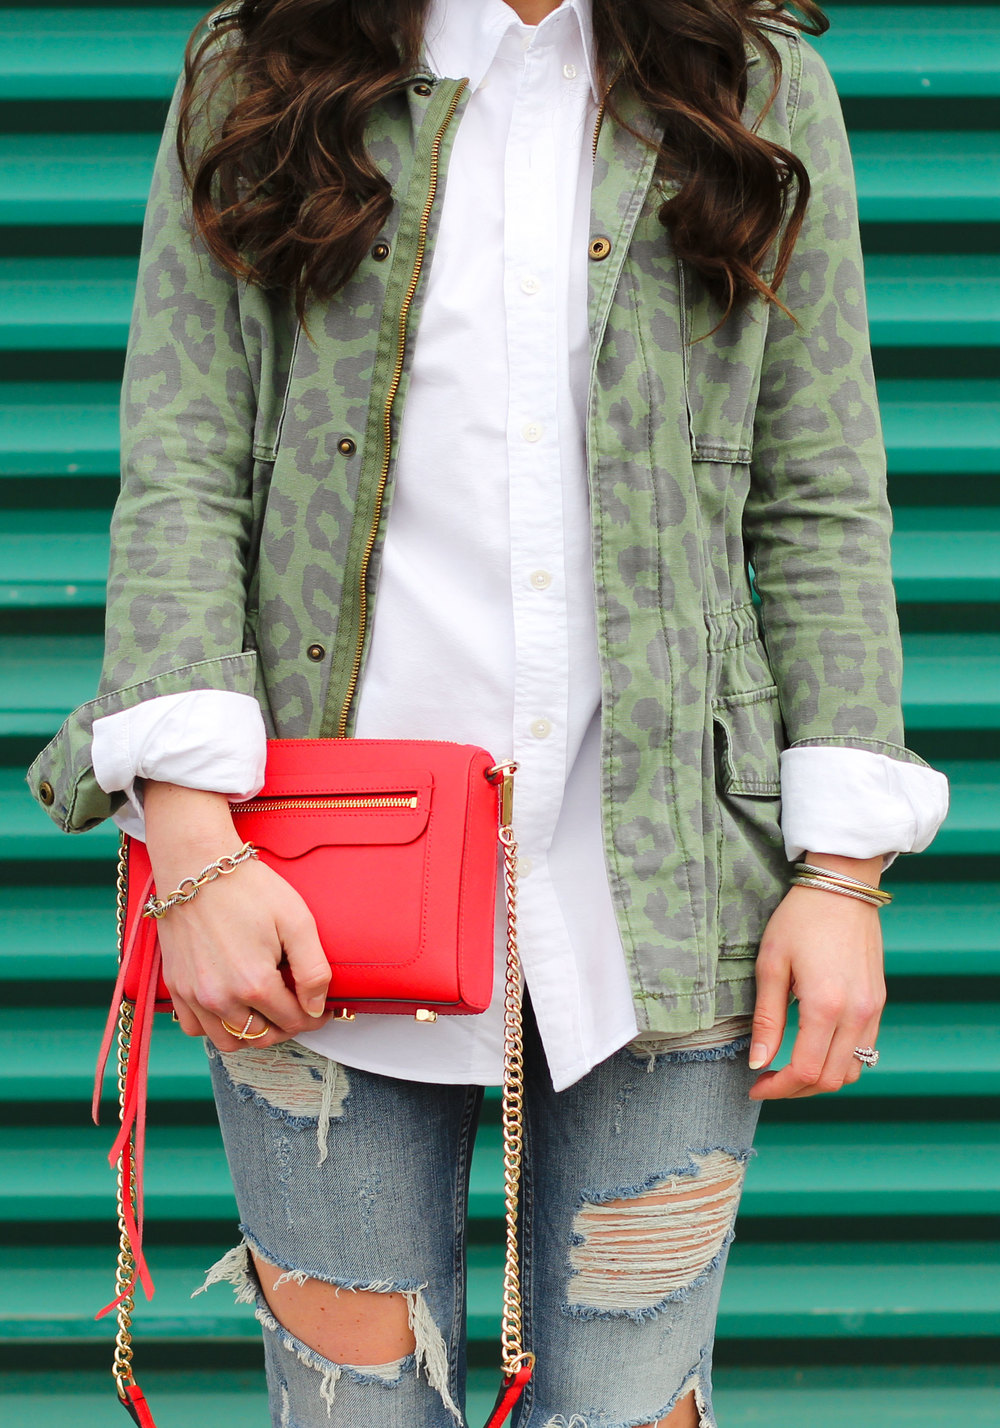 Spring Trends, Military Style Jacket, Boyfriend Shirts, Destroyed Jeans, Red Rebecca Minkoff Avery Crossbody Handbag